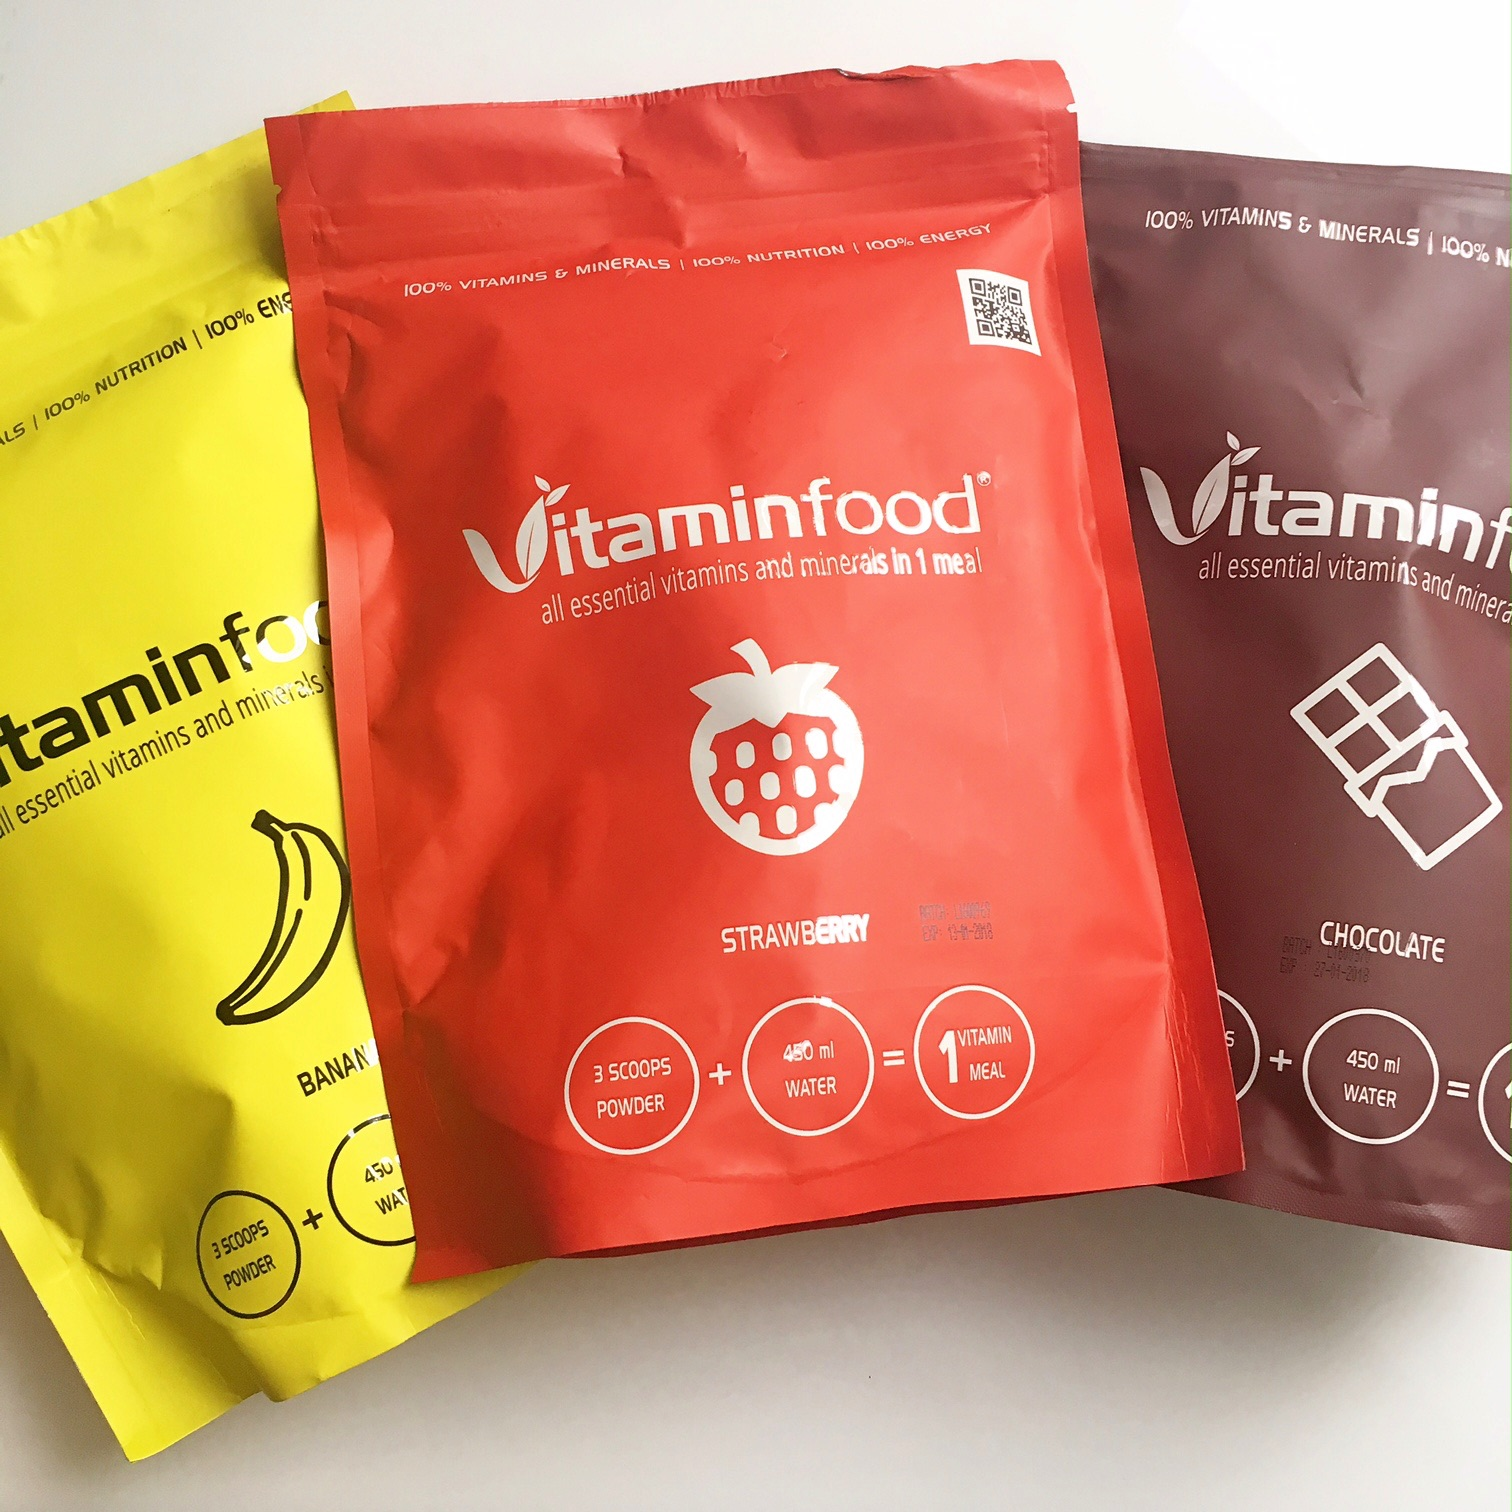 vitaminfood